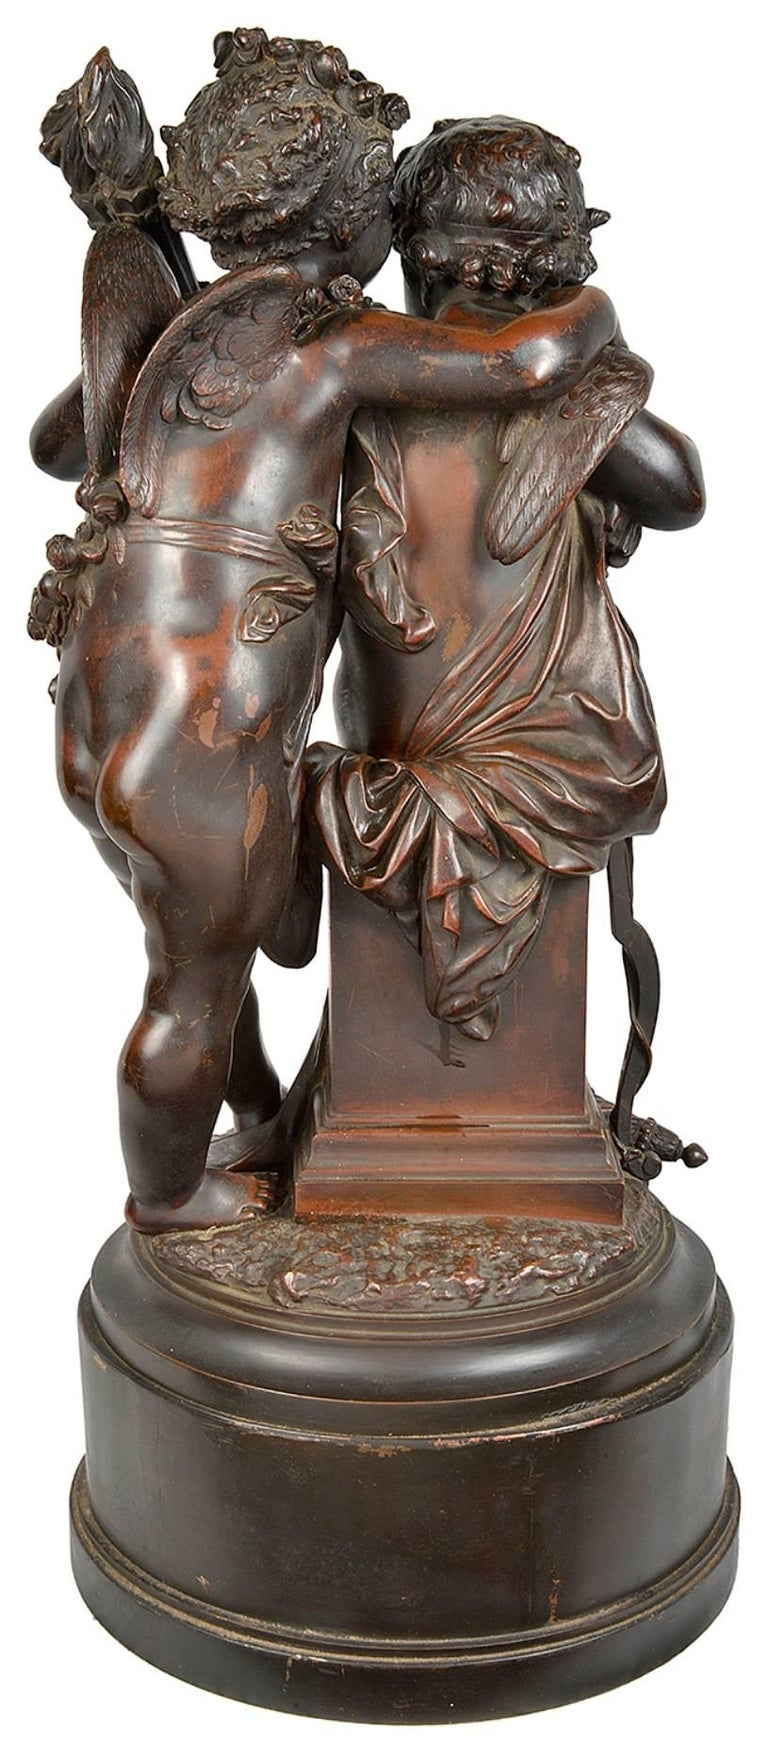 French Carrier-Belleuse Bronze Statue of Cherubs, 19th Century For Sale